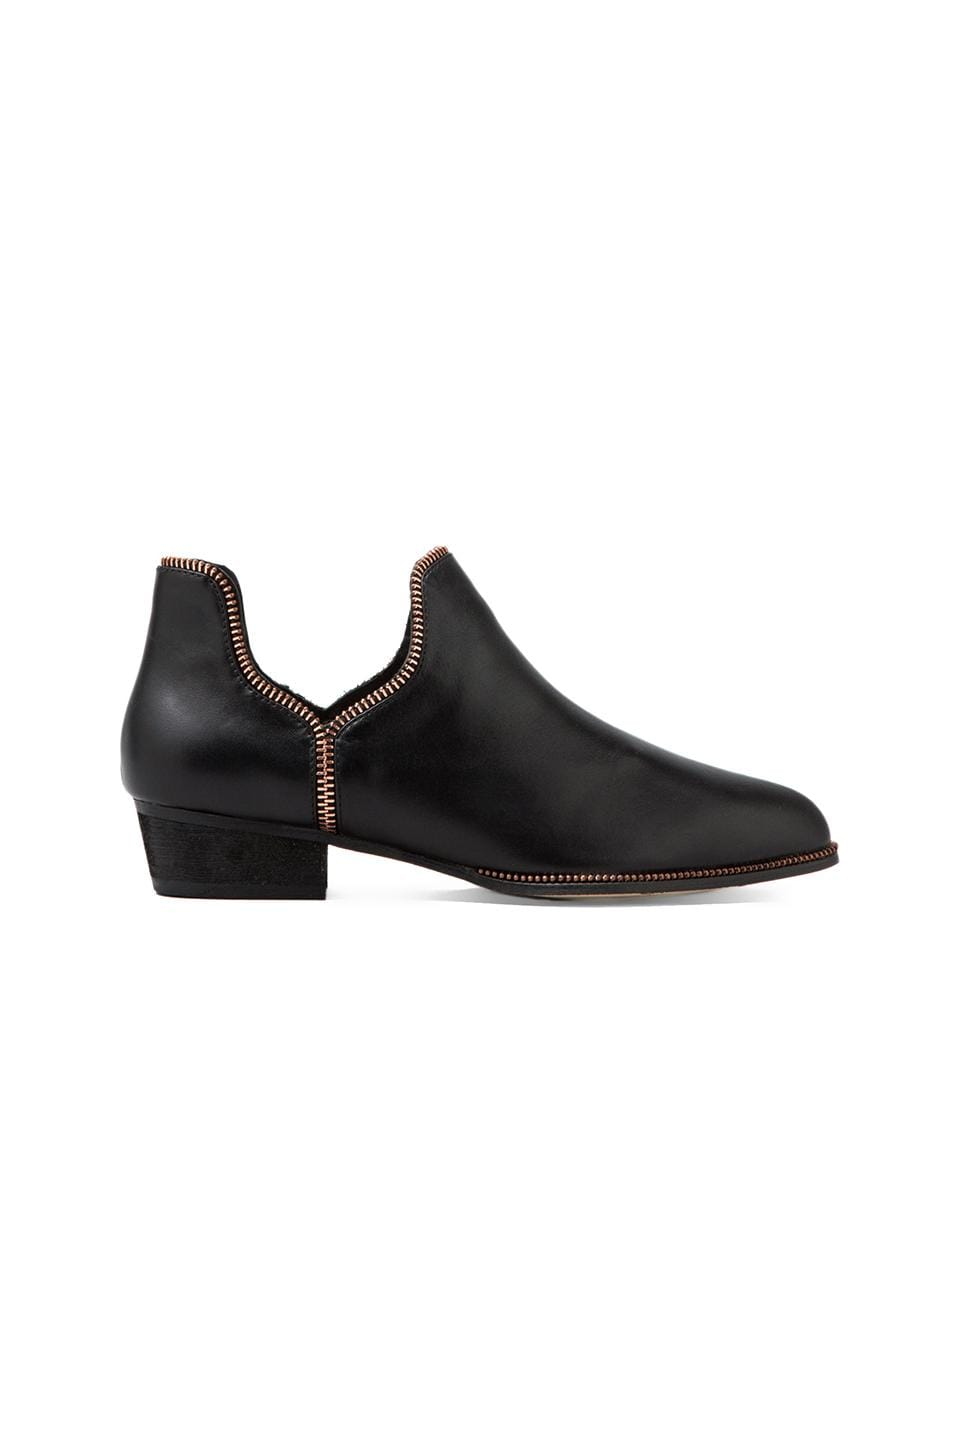 SENSO Bertie IV Boot in Black/Rosegold